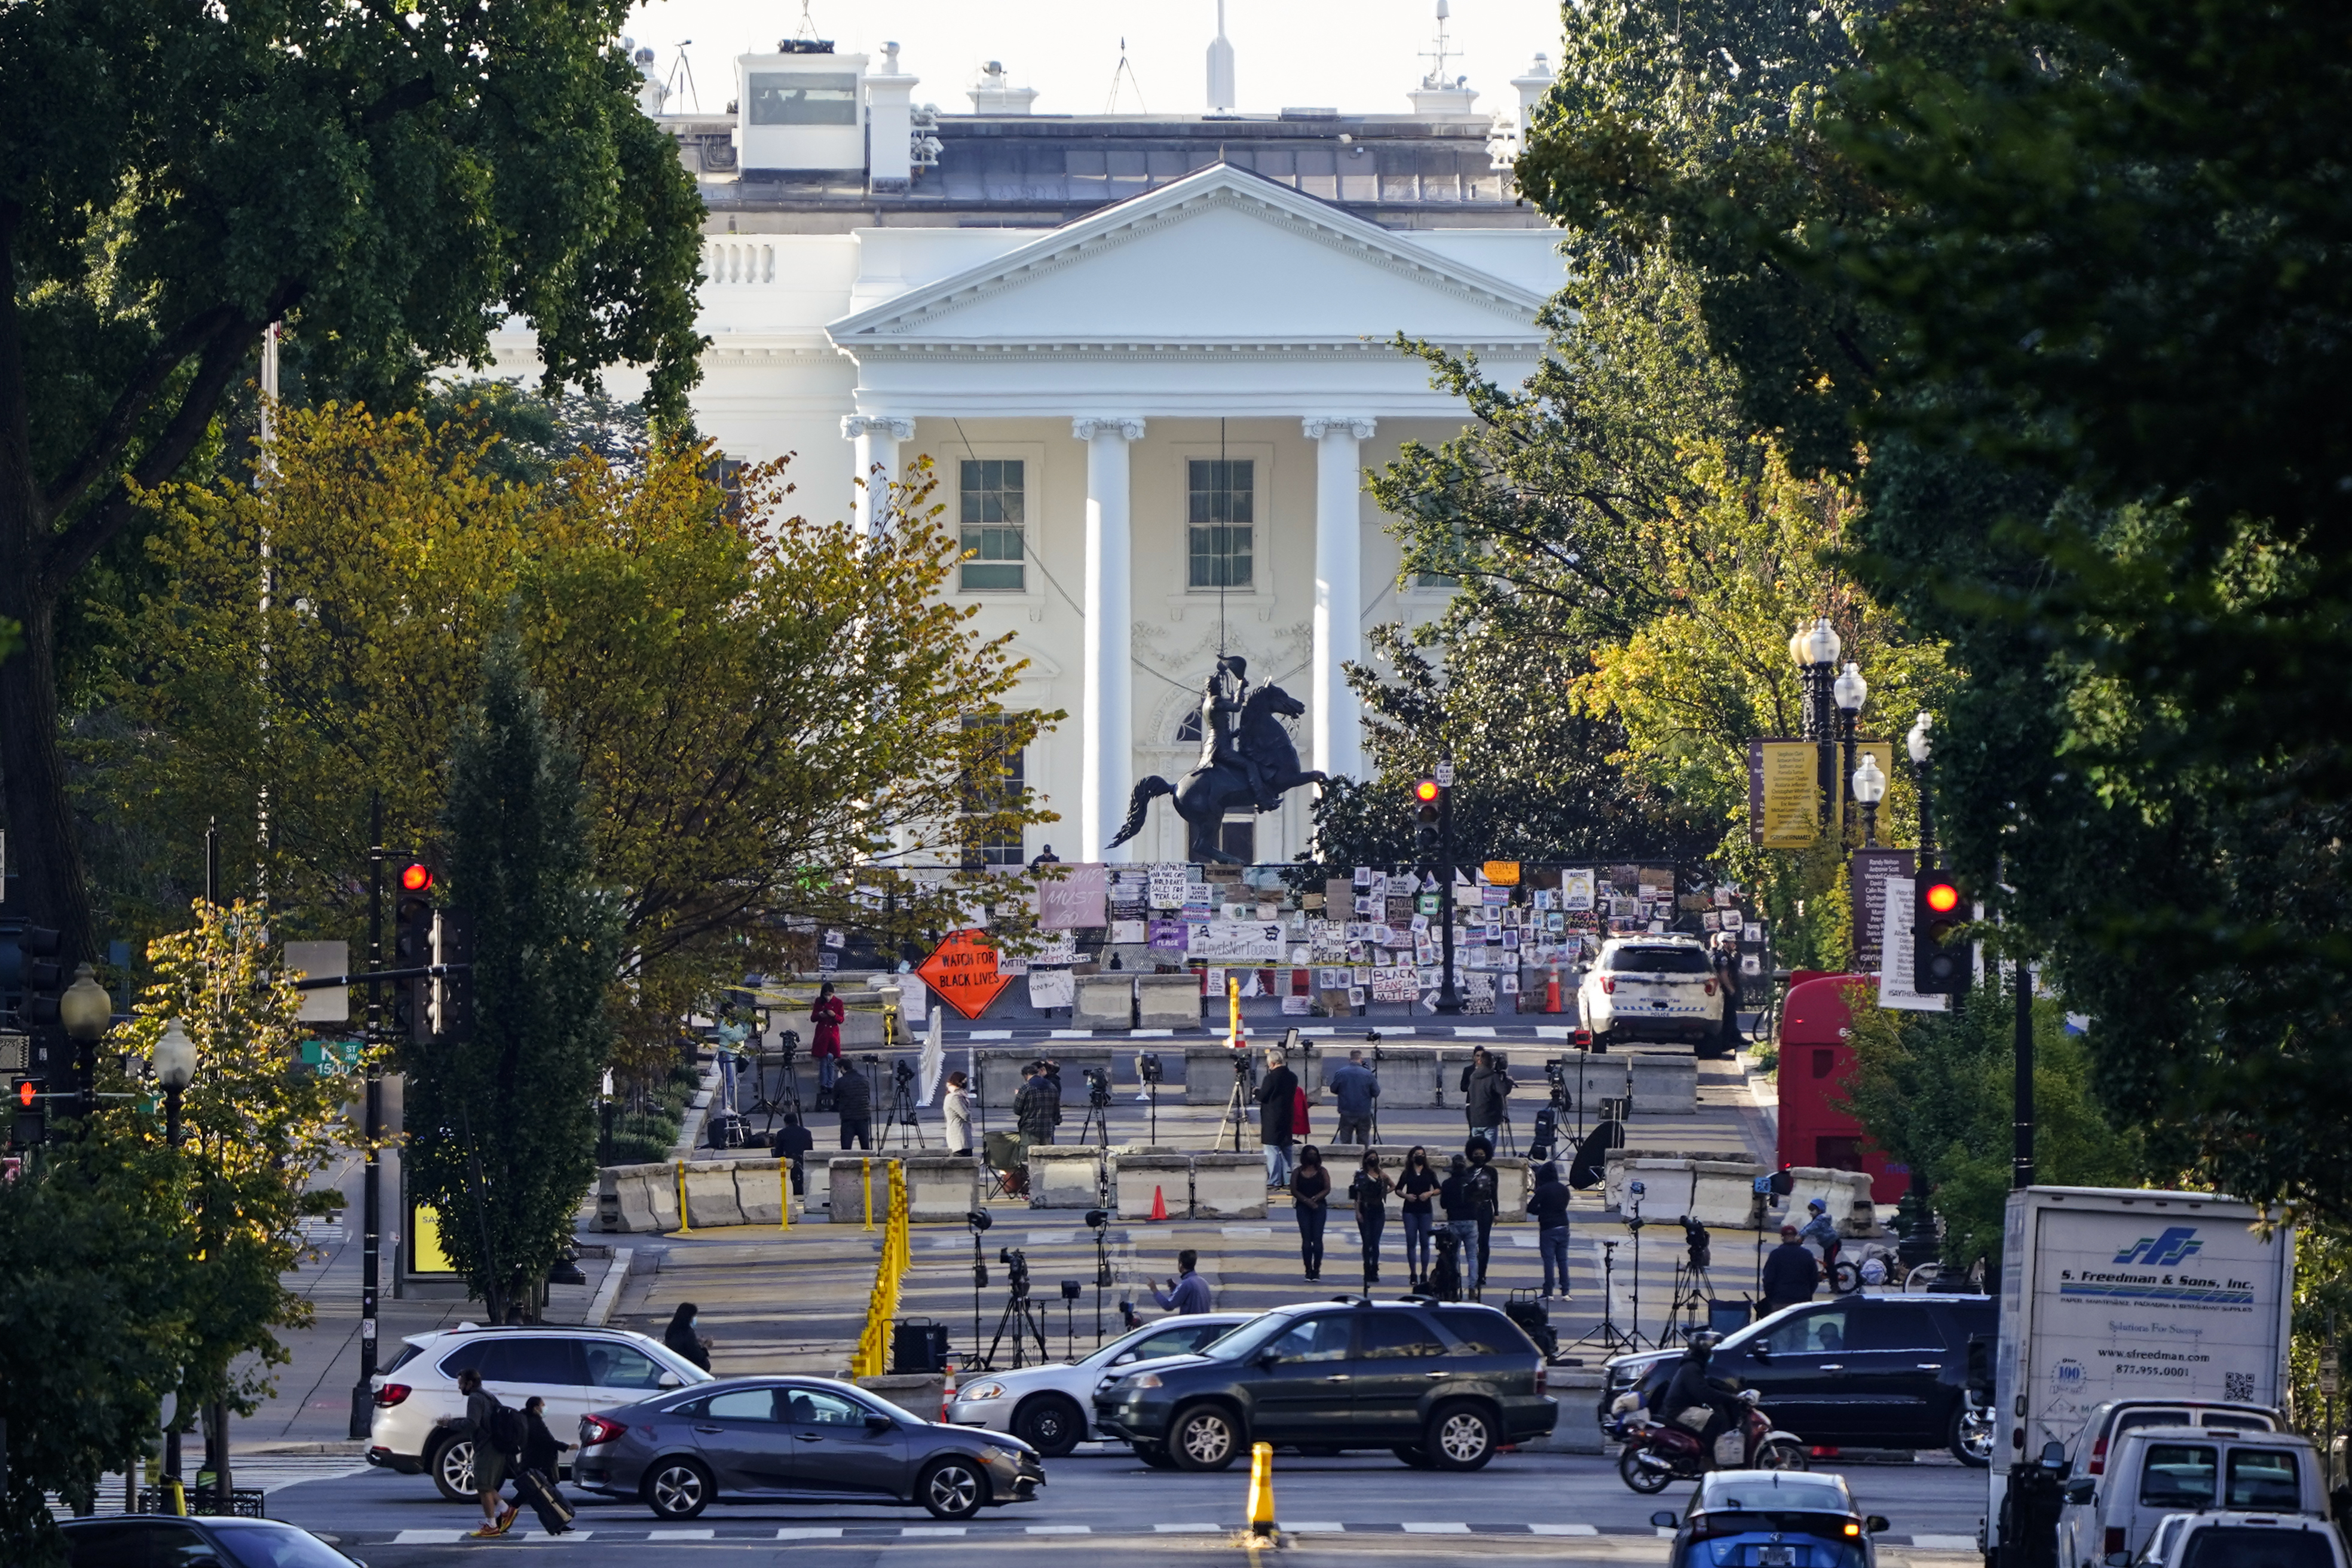 The White House is seen in Washington, Oct. 6, 2020, the morning after President Donald Trump returned from the hospital where he was treated for COVID-19.